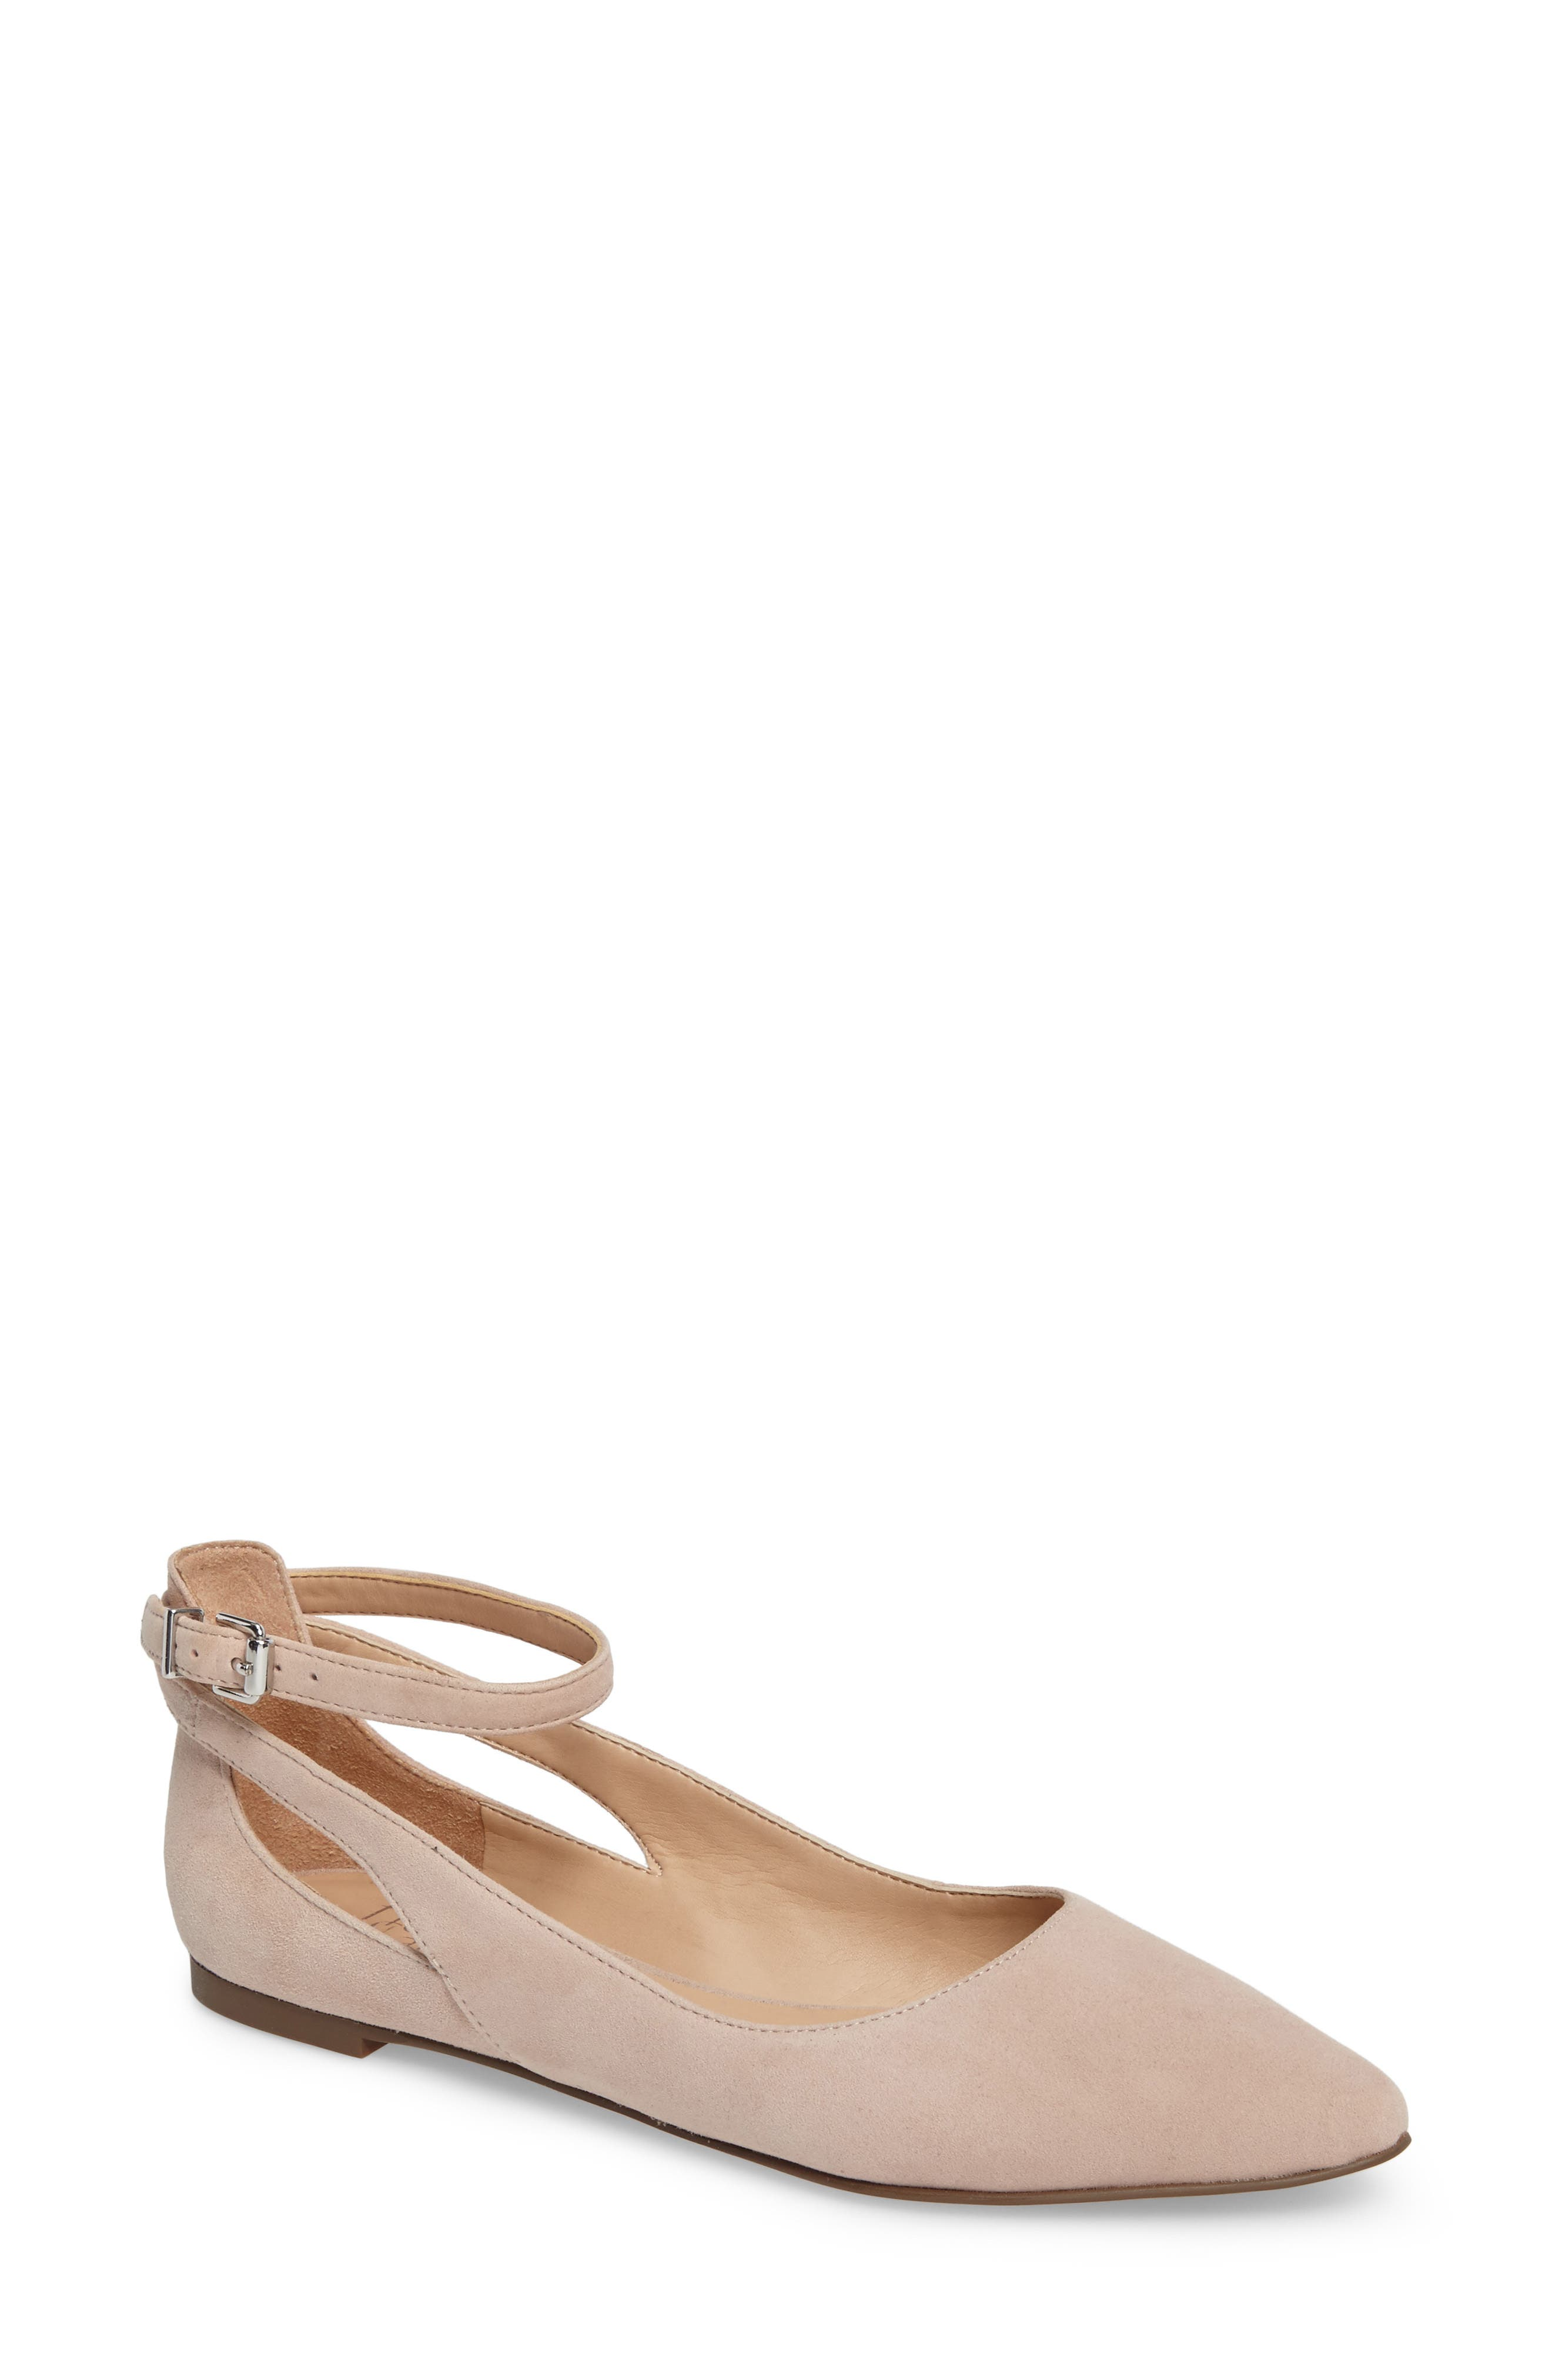 Sylvia Ankle Strap Flat,                         Main,                         color, Victorian Rose Suede